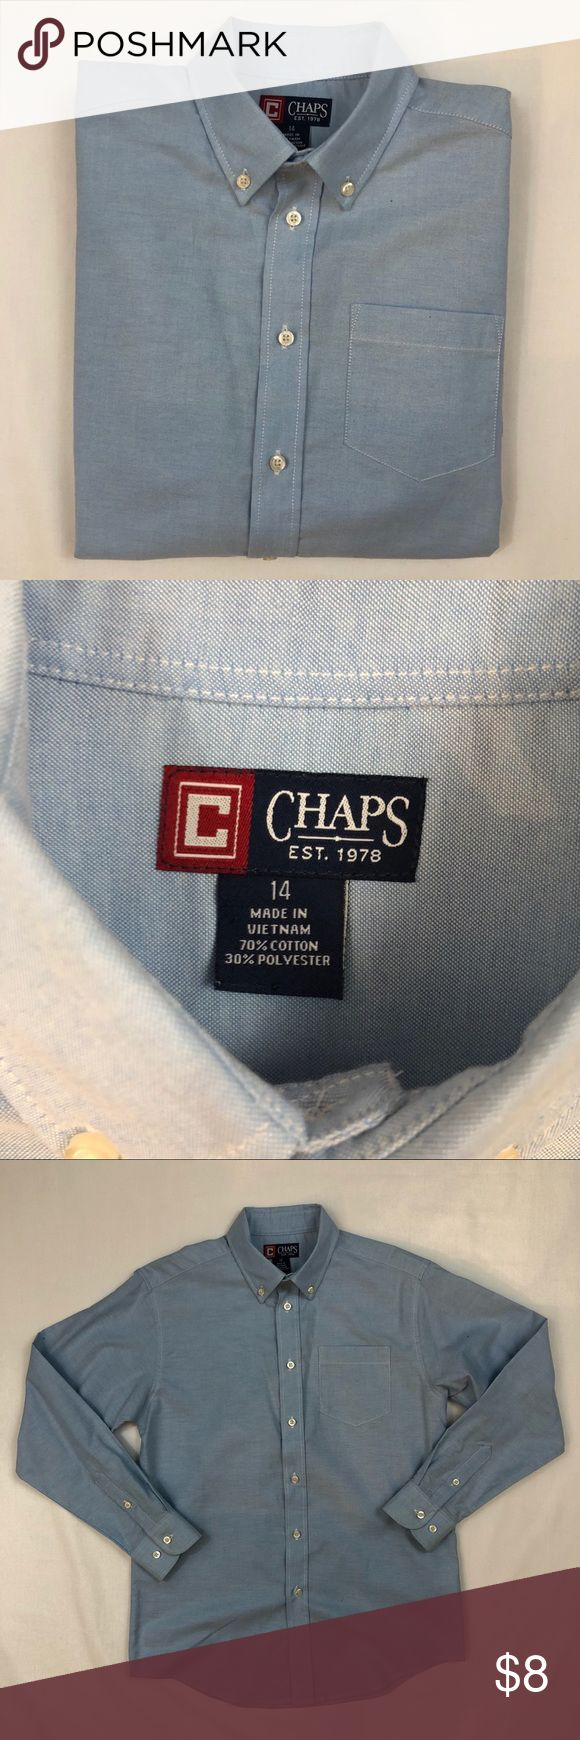 Chaps Boys Dress Shirt Gently worn  Size 14  Great condition   Item611 Chaps Shirts & Tops Button Down Shirts